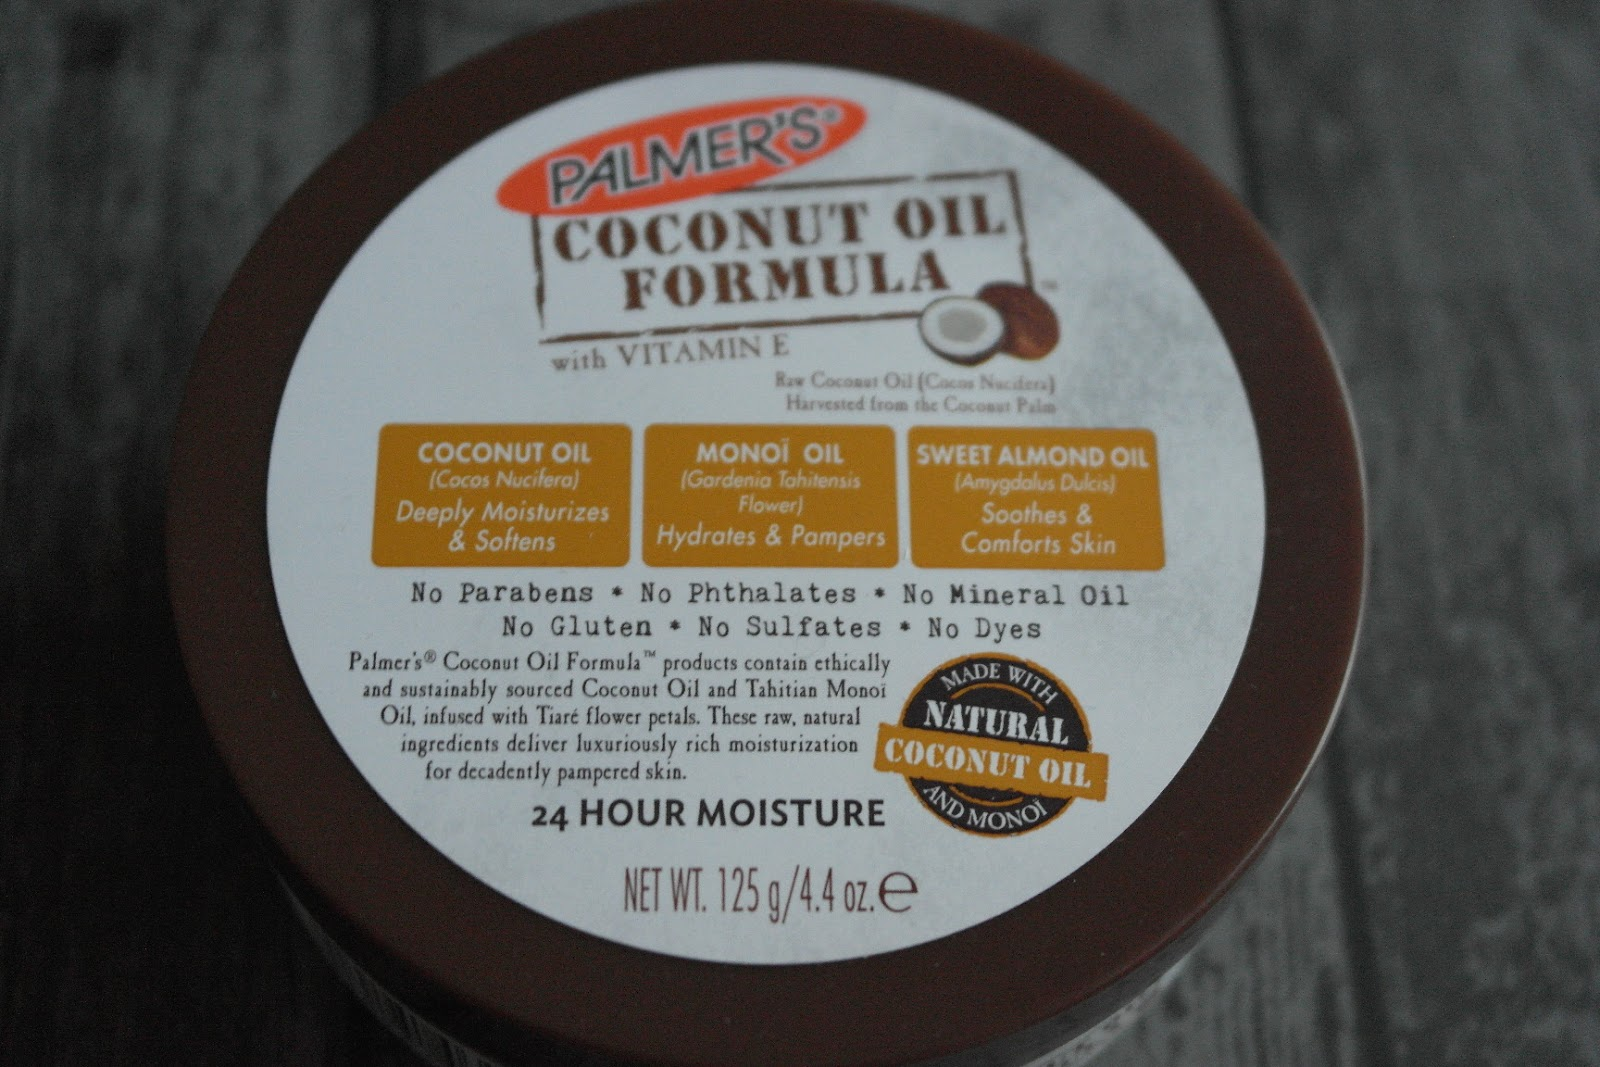 Palmer's coconut oil formula review